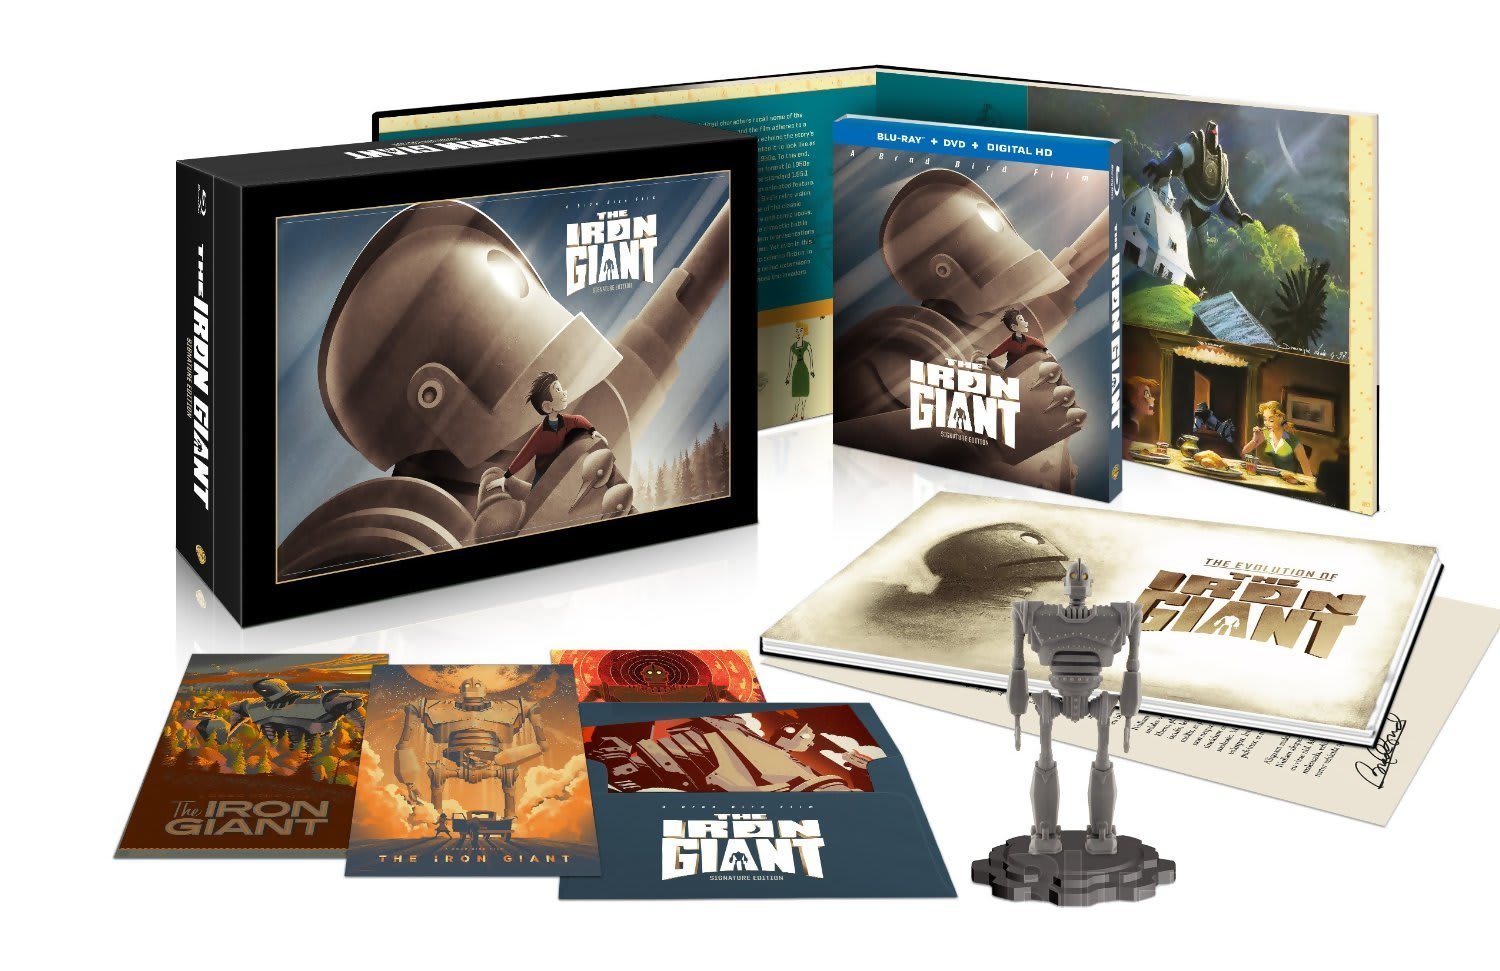 The Iron Giant' gets a collector edition Blu-ray this fall